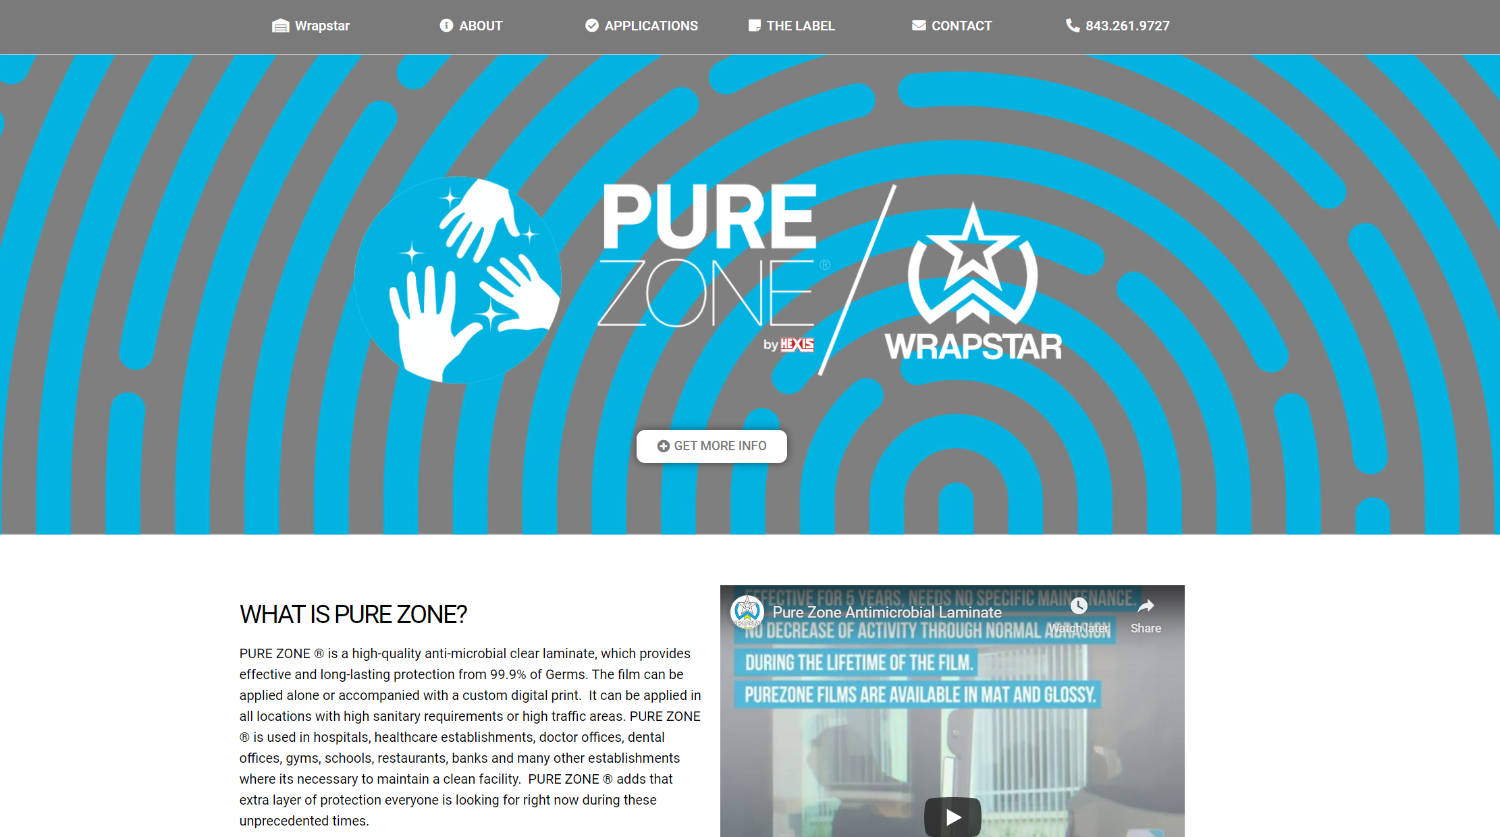 Pure Zone antimicrobial protection film Charleston Wrapstar